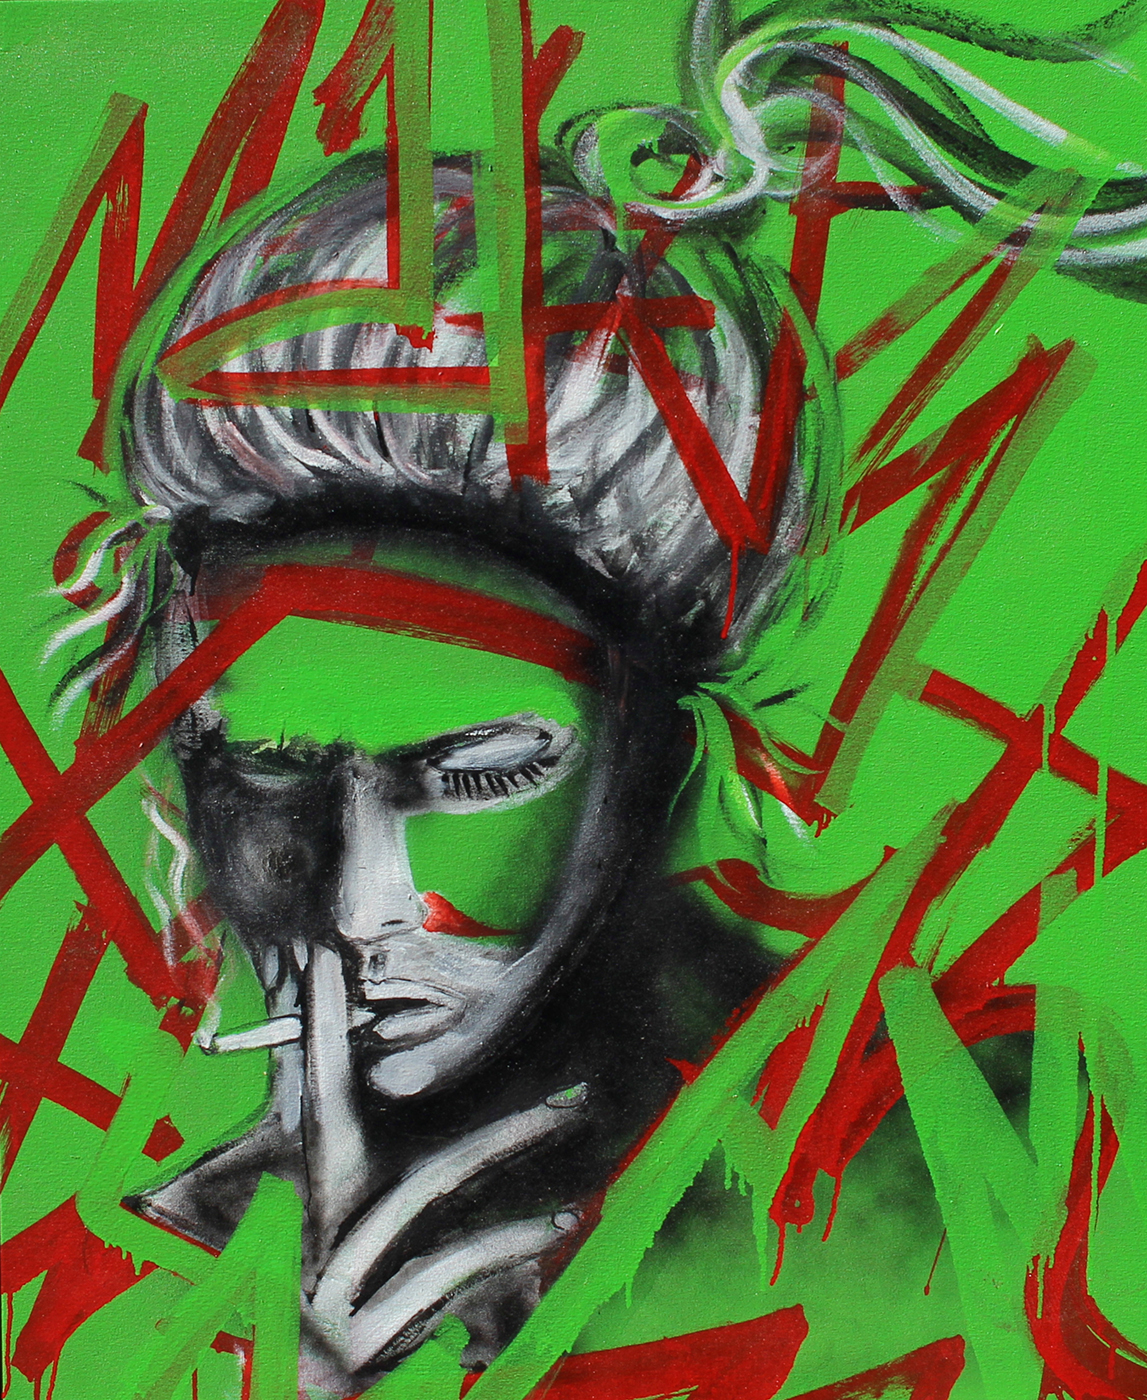 Cigarret Girl,2015 ( Street Caligraphy) Paint 34,5 x 41,5 inches